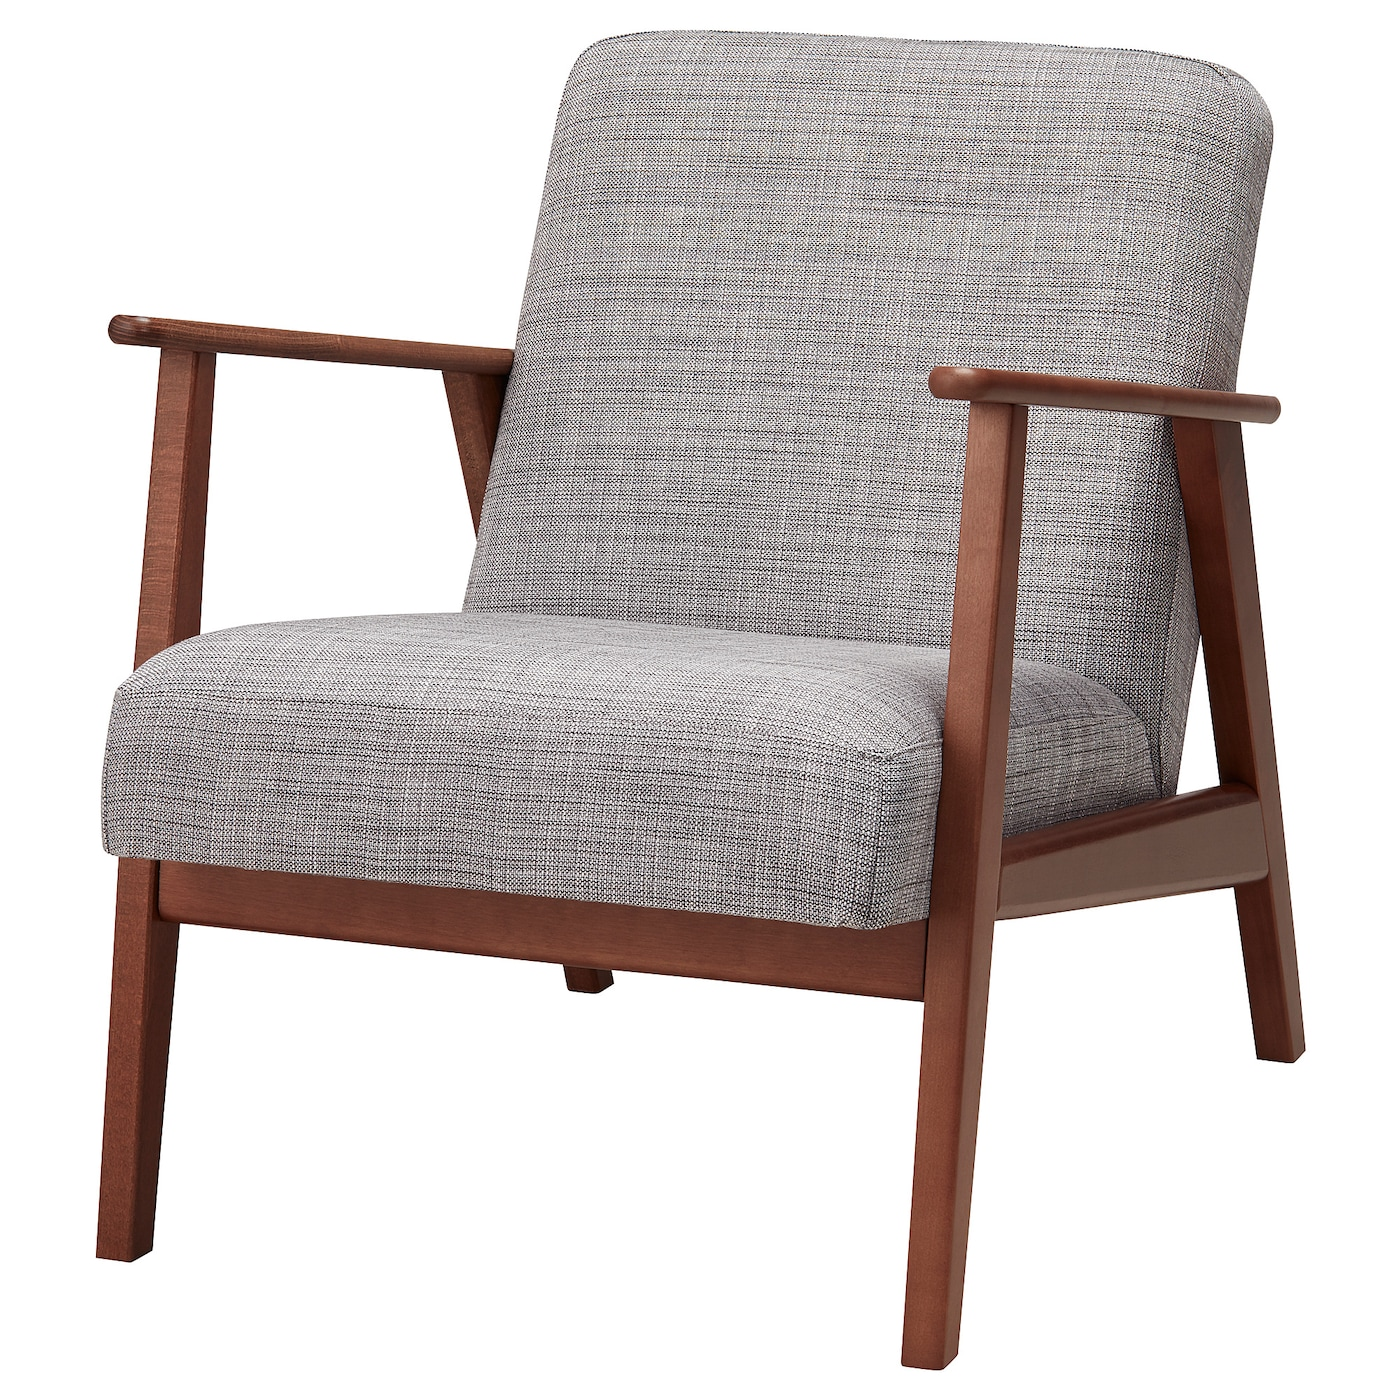 Charmant IKEA EKENÄSET Armchair The Chair Legs Are Made Of Solid Wood, Which Is A  Durable